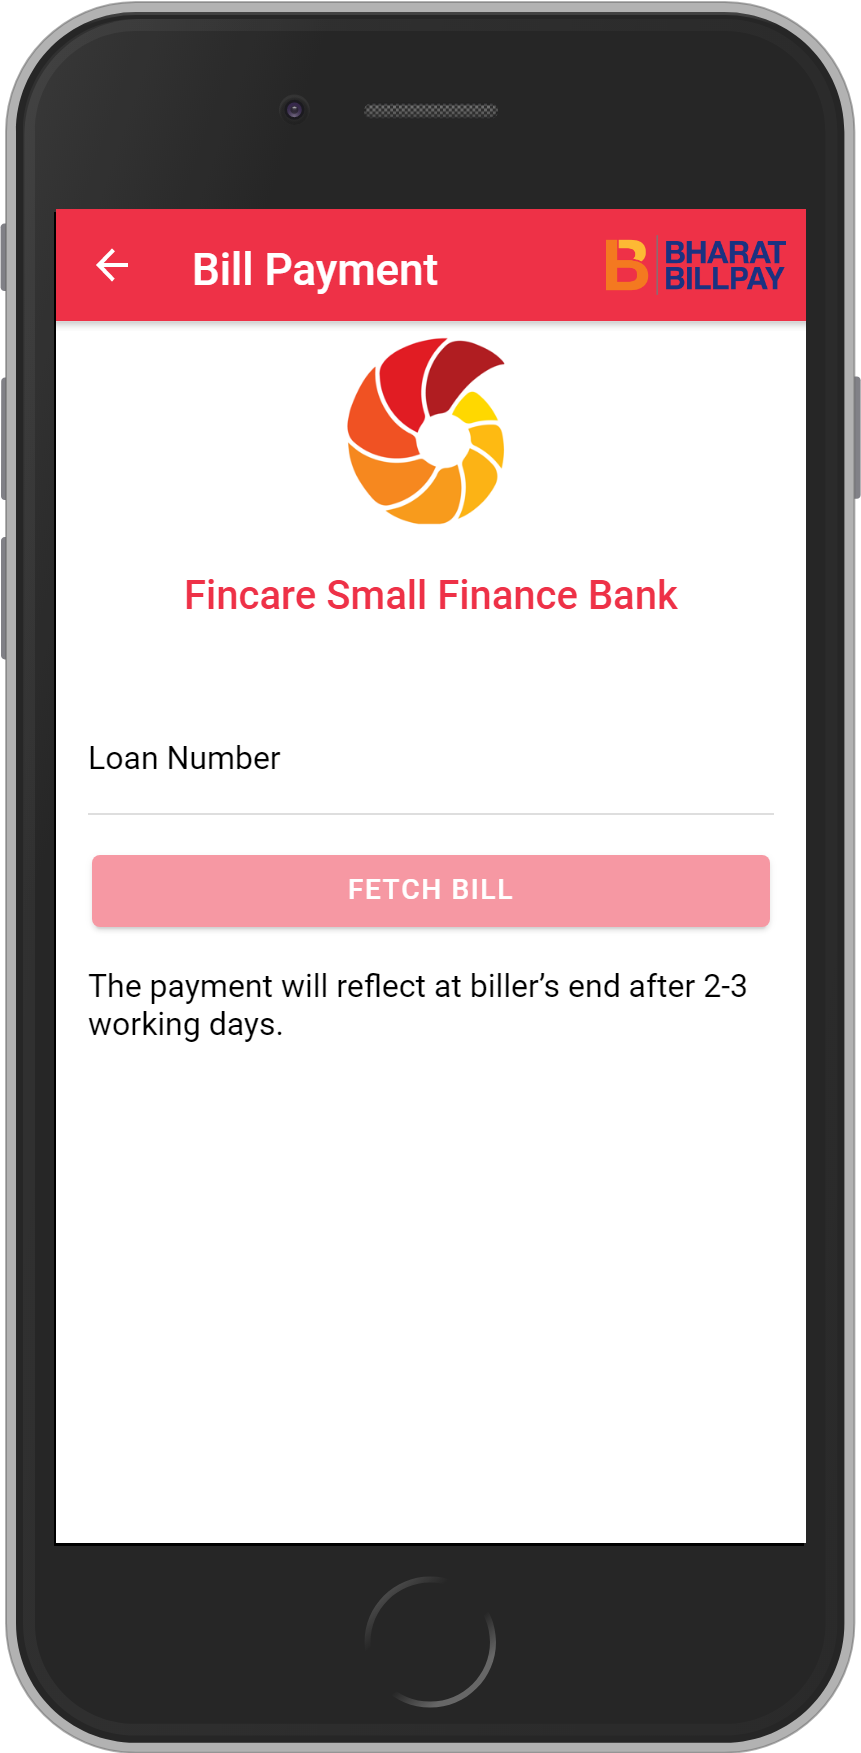 Get UNLIMITED <b>0.1%</b> CASHBACK on Fincare Small Finance Bank Loan Payment.